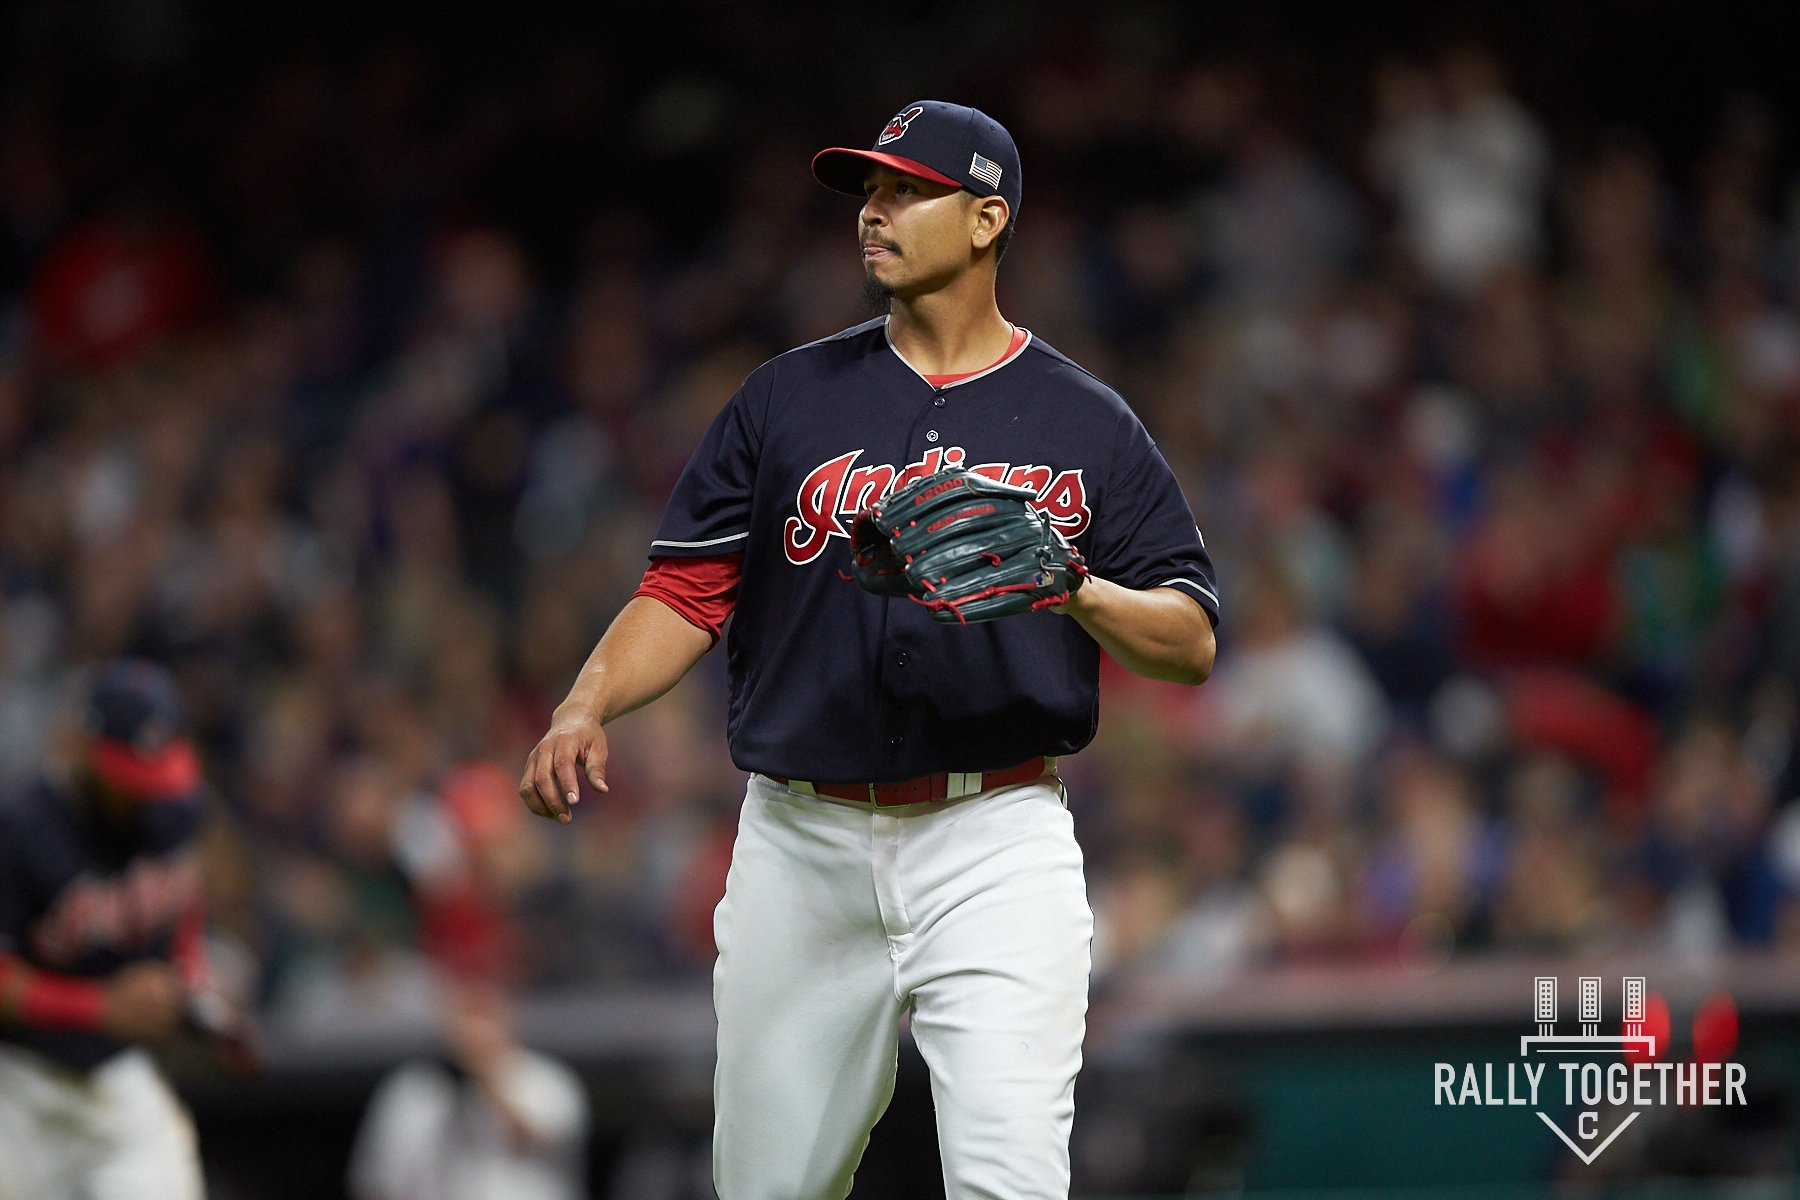 That's one tough Cookie.  Final line on @Cookie_Carrasco: 6 IP | 7 H | 0 ER | 1 BB | 9 Ks. https://t.co/ifsSA0rEZc